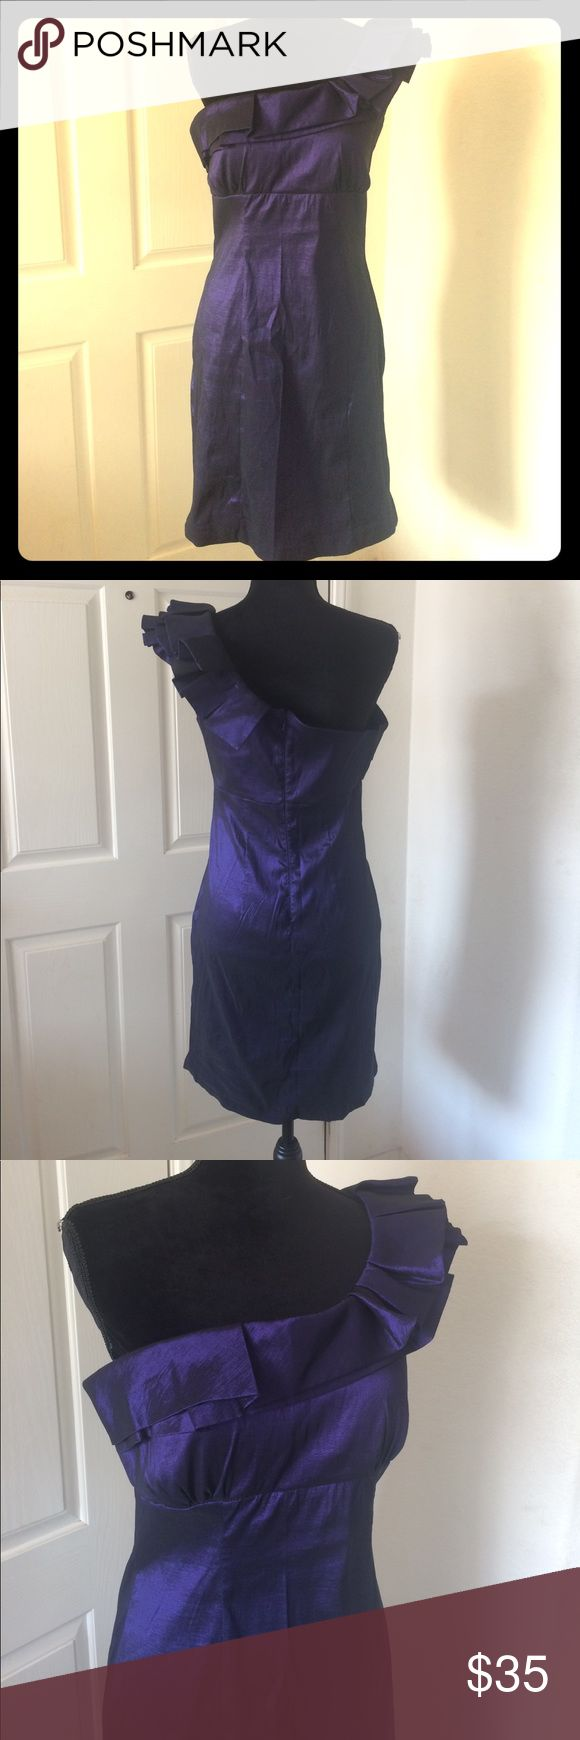 Snap Juniors Semiformal Purple Iridescent Dress Snap brand juniors size 11 semiformal one shoulder dress in a purple shiny iridescent color. The length is to right above the knee. Perfect for a school dance or night out on the town. In gently used condition with no stains or rips; does have some wrinkles from being stored. Polyester, nylon, and spandex. Measurements- CHEST: 16.5 in. LENGTH: (from top of back) 30 in. Any questions, don't hesitate to ask! 🤗 Snap Dresses One Shoulder